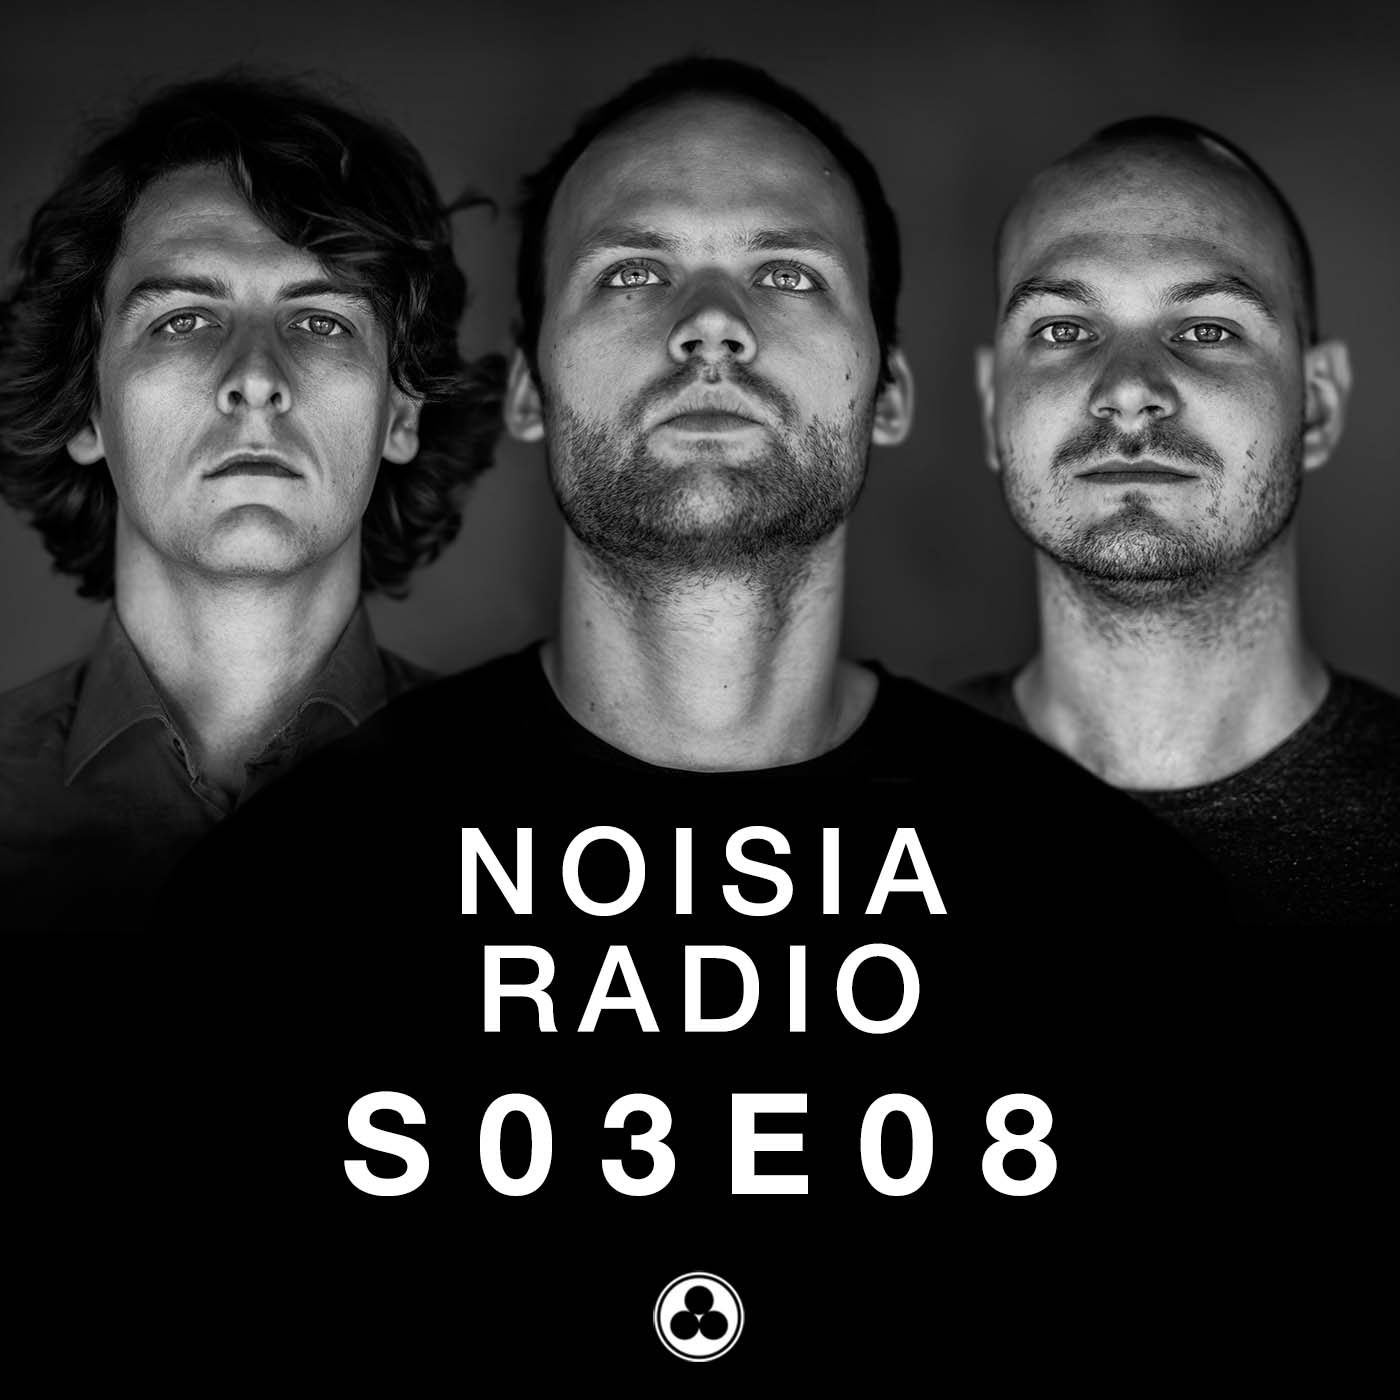 Noisia Radio S03E08